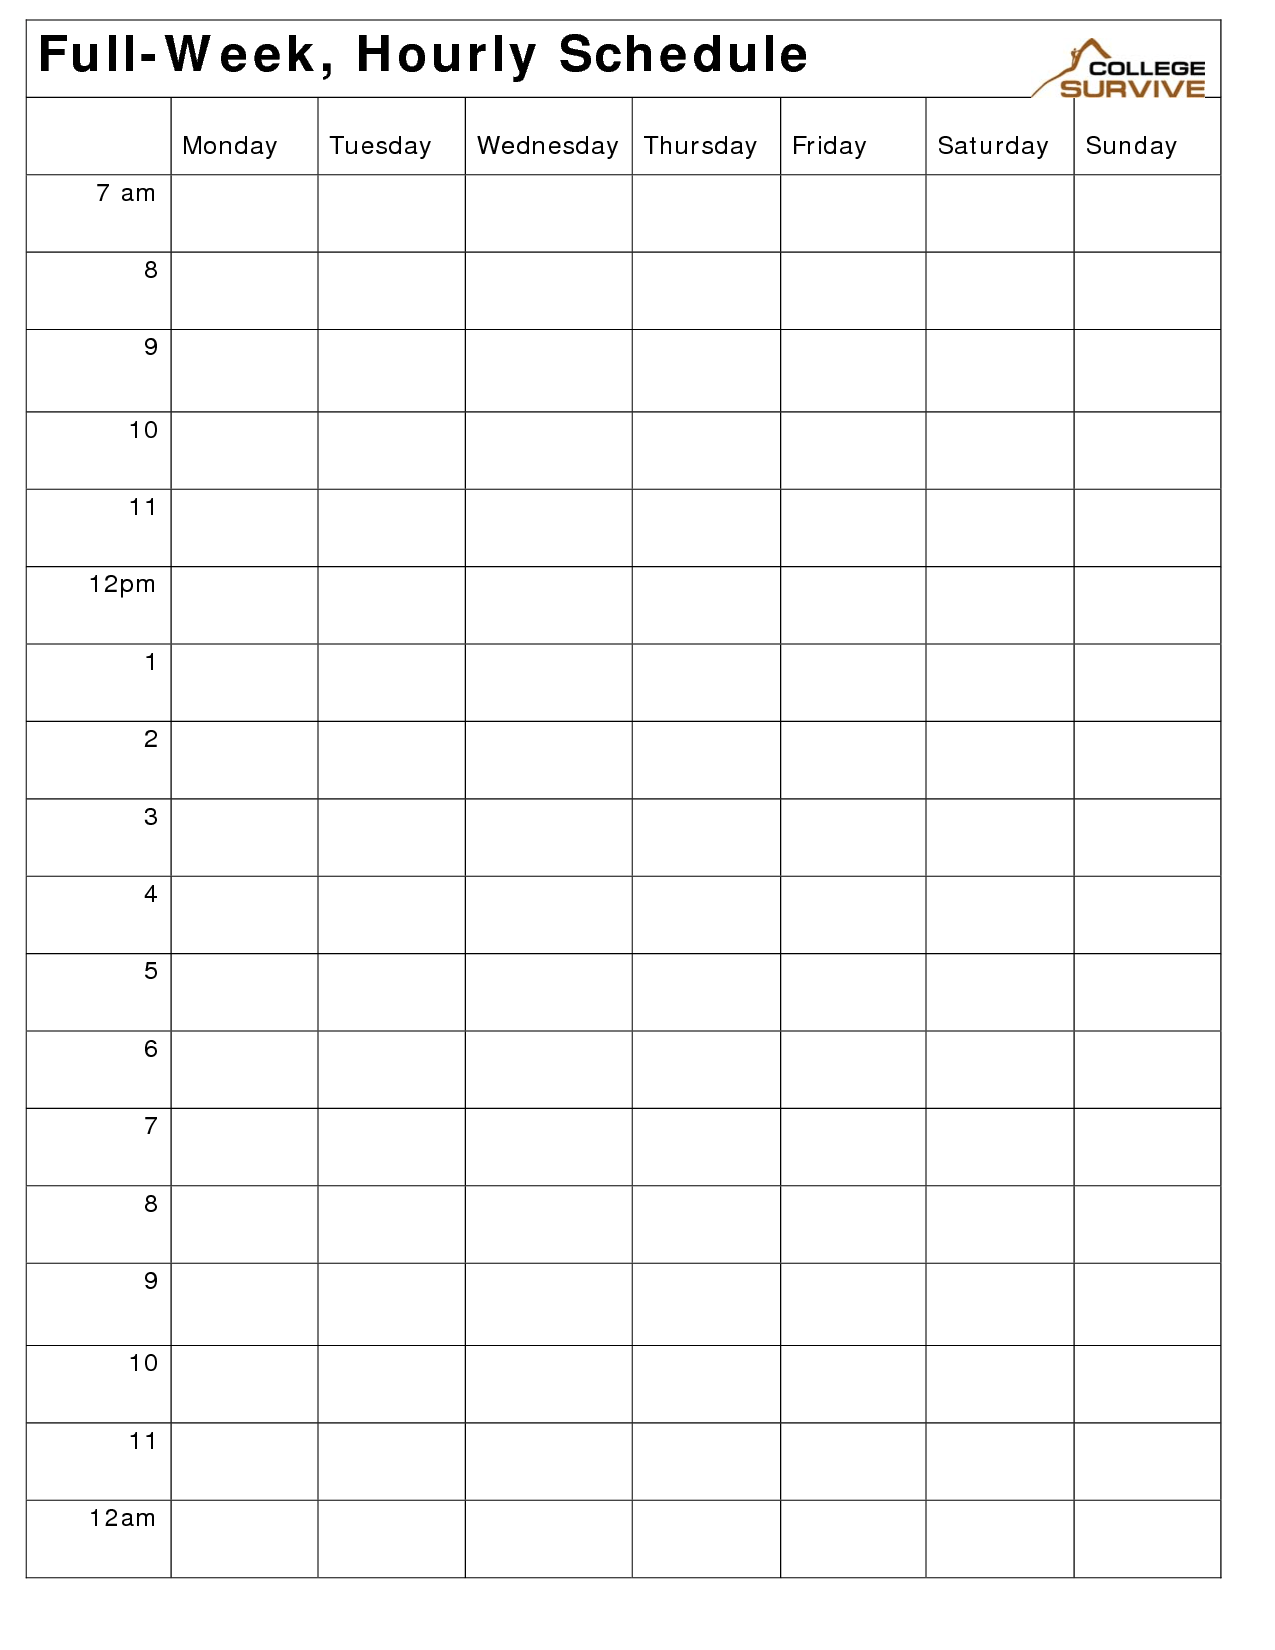 Weekly Hourly Work Schedule Template